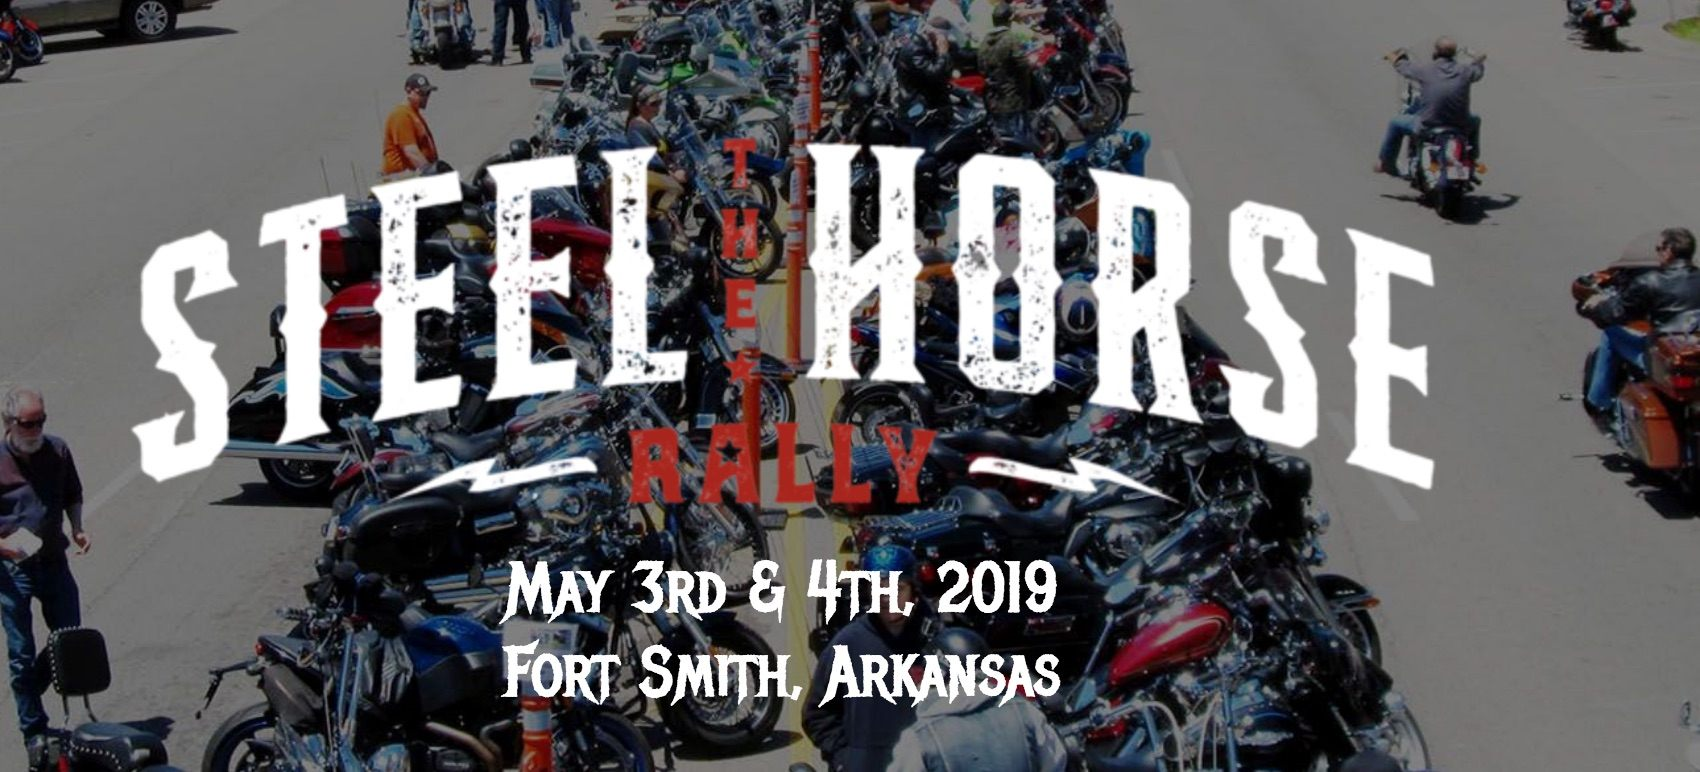 Fireworks and 'Fuel' to be part of fifth annual Steel Horse Rally thumbnail